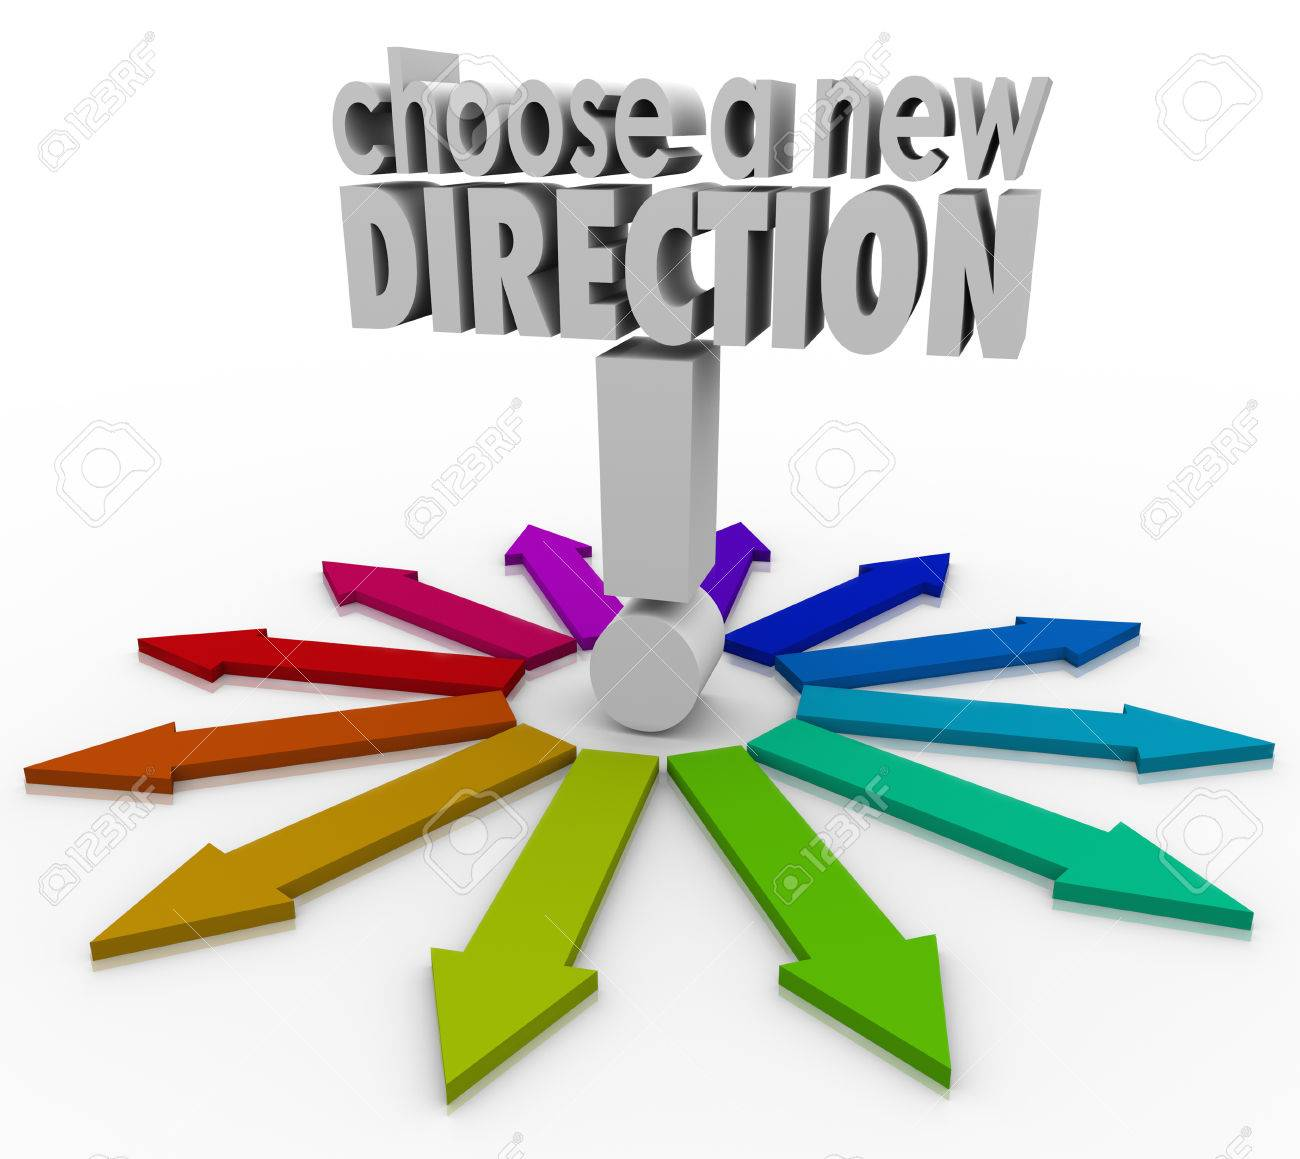 choose a new direction d words to illustrate the many possible choose a new direction 3d words to illustrate the many possible choices before you in changing